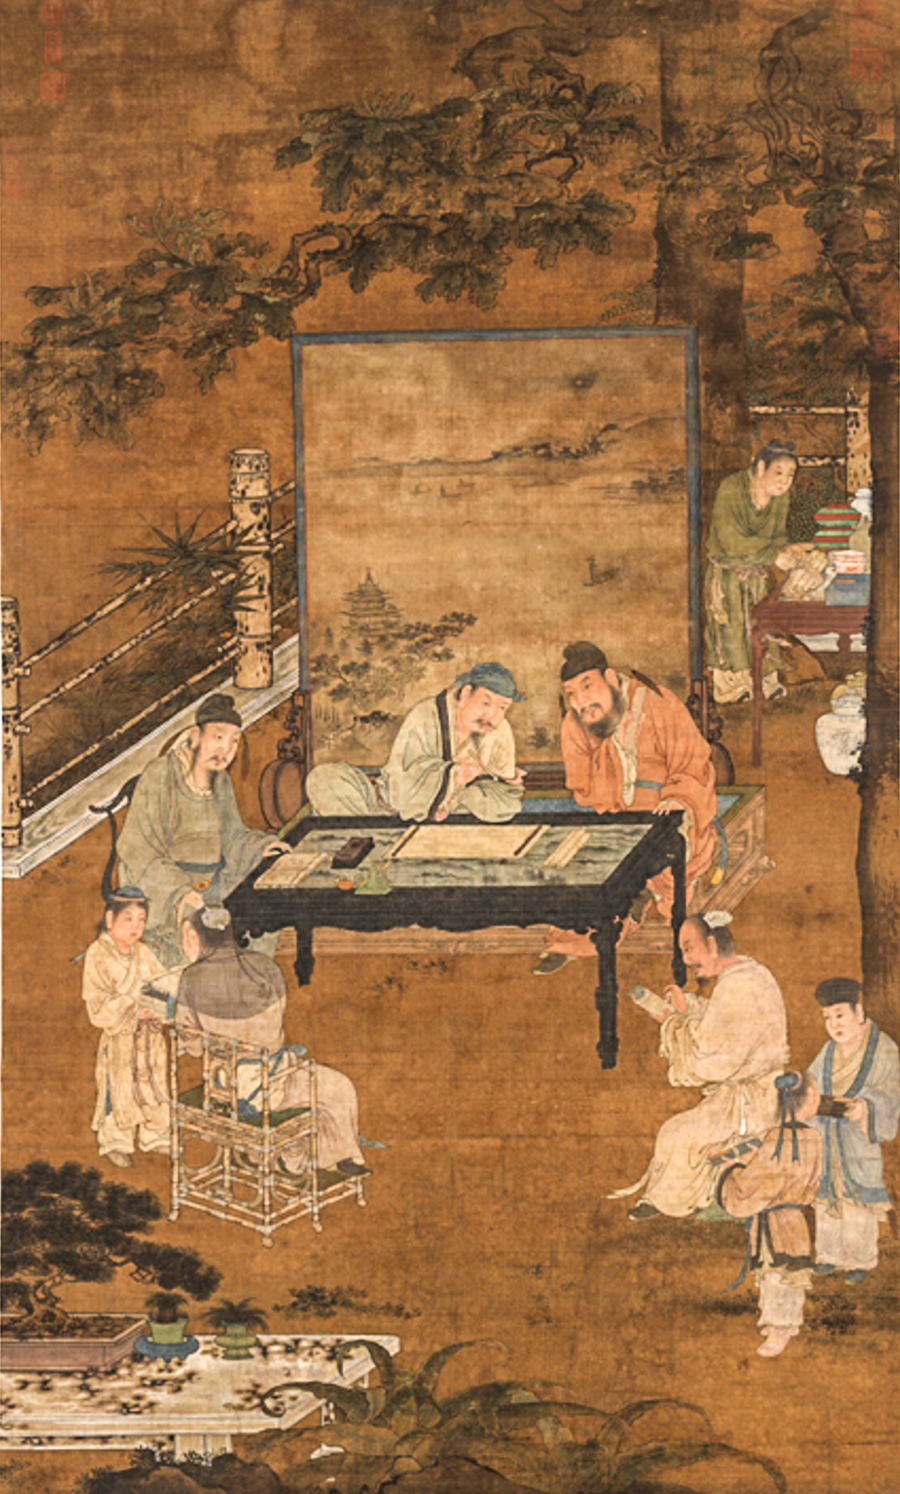 CHINESE SCHOLARS. - Gathering artists to share ideas and innovate is an ancient Chinese concept. Chinese scholars were Renaissance men 2000 years before the word was invented. Musicians, writers, and thinkers, the scholars monopolized the art of painting and calligraphy. They gathered over tea and shared techniques, new tools, and ideas.